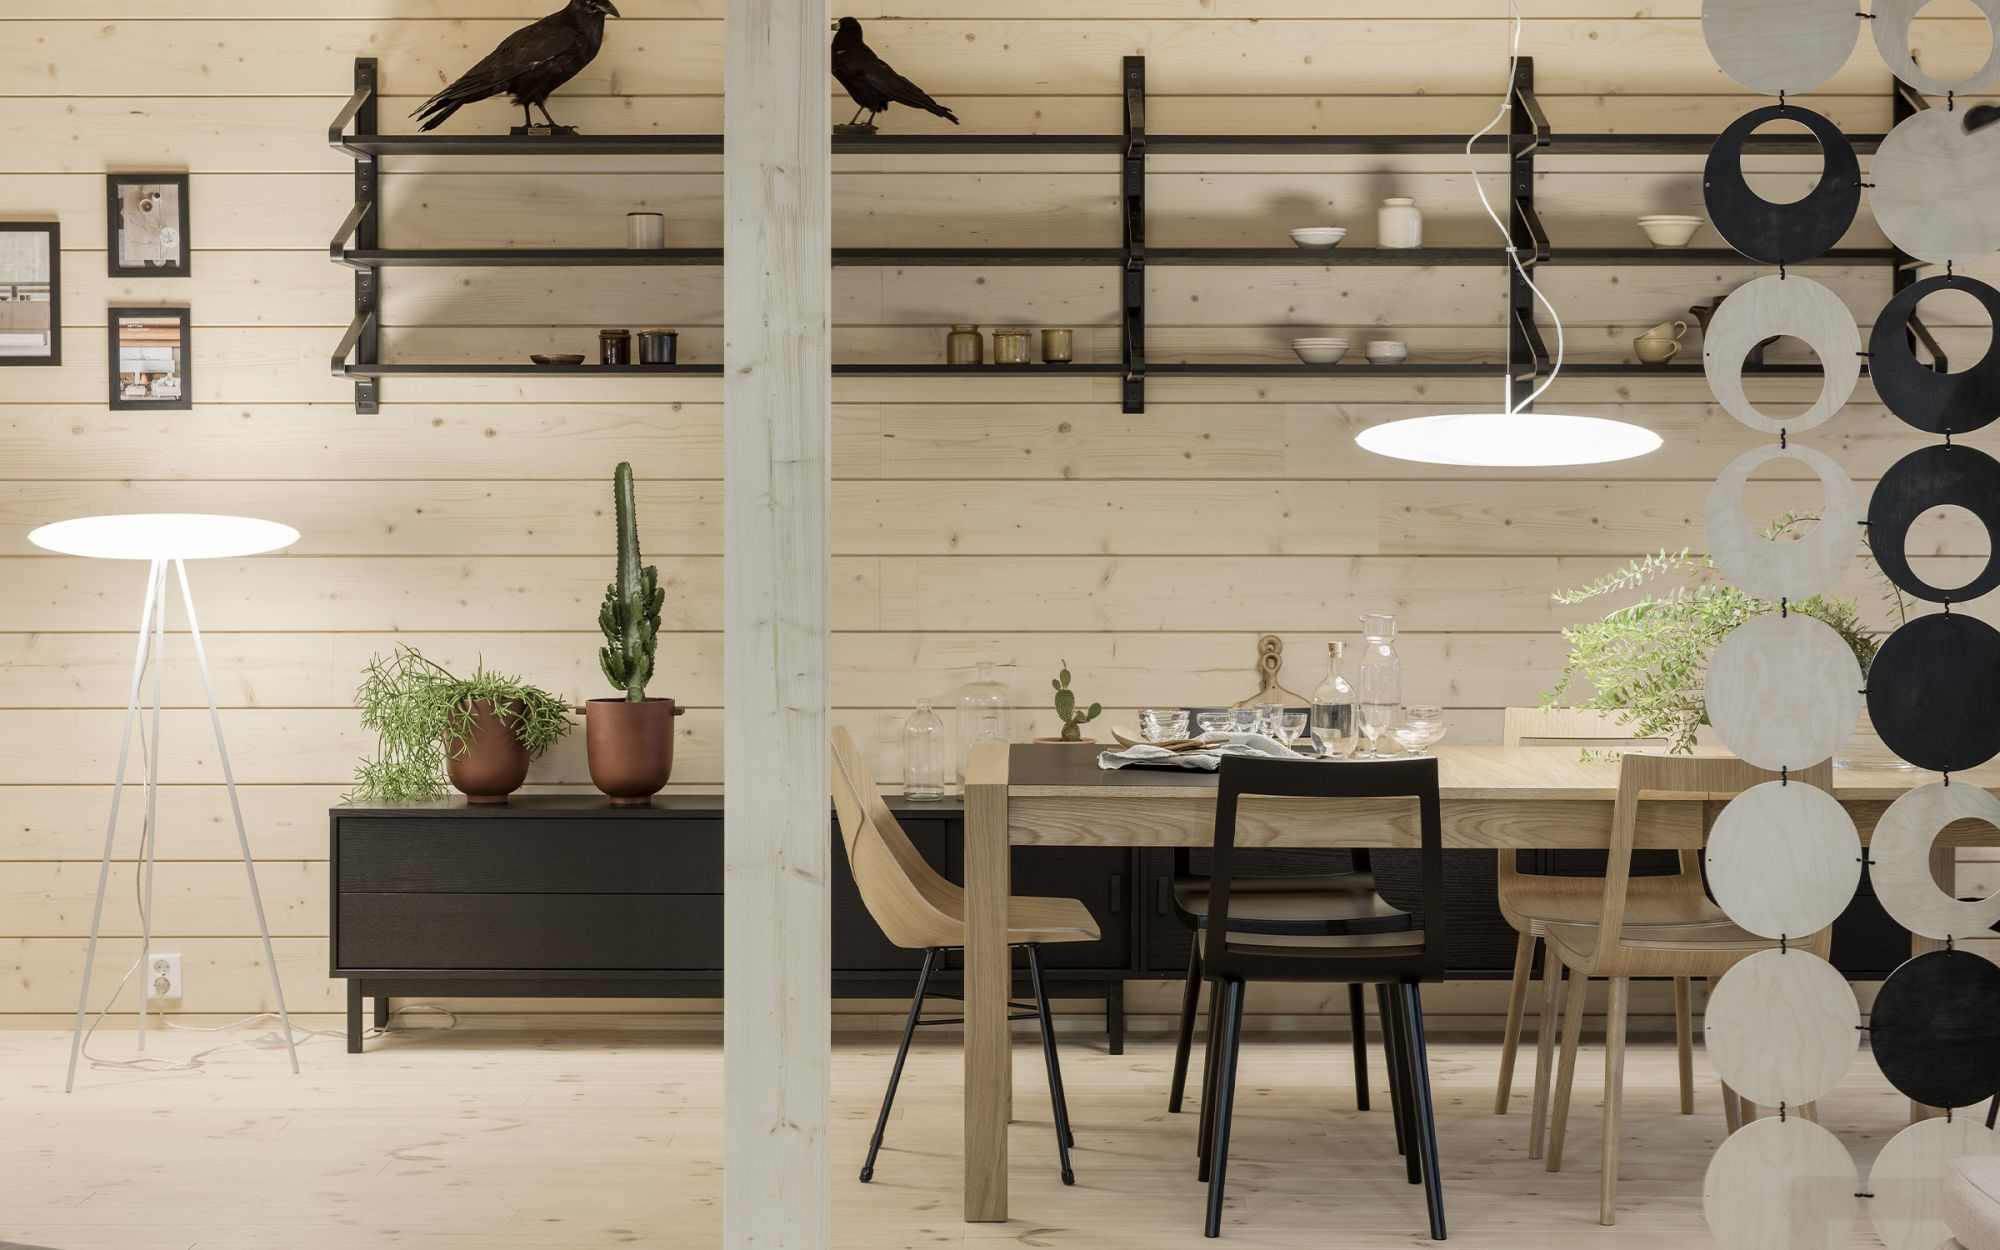 Mars pendant light and floor light in wooden dining room